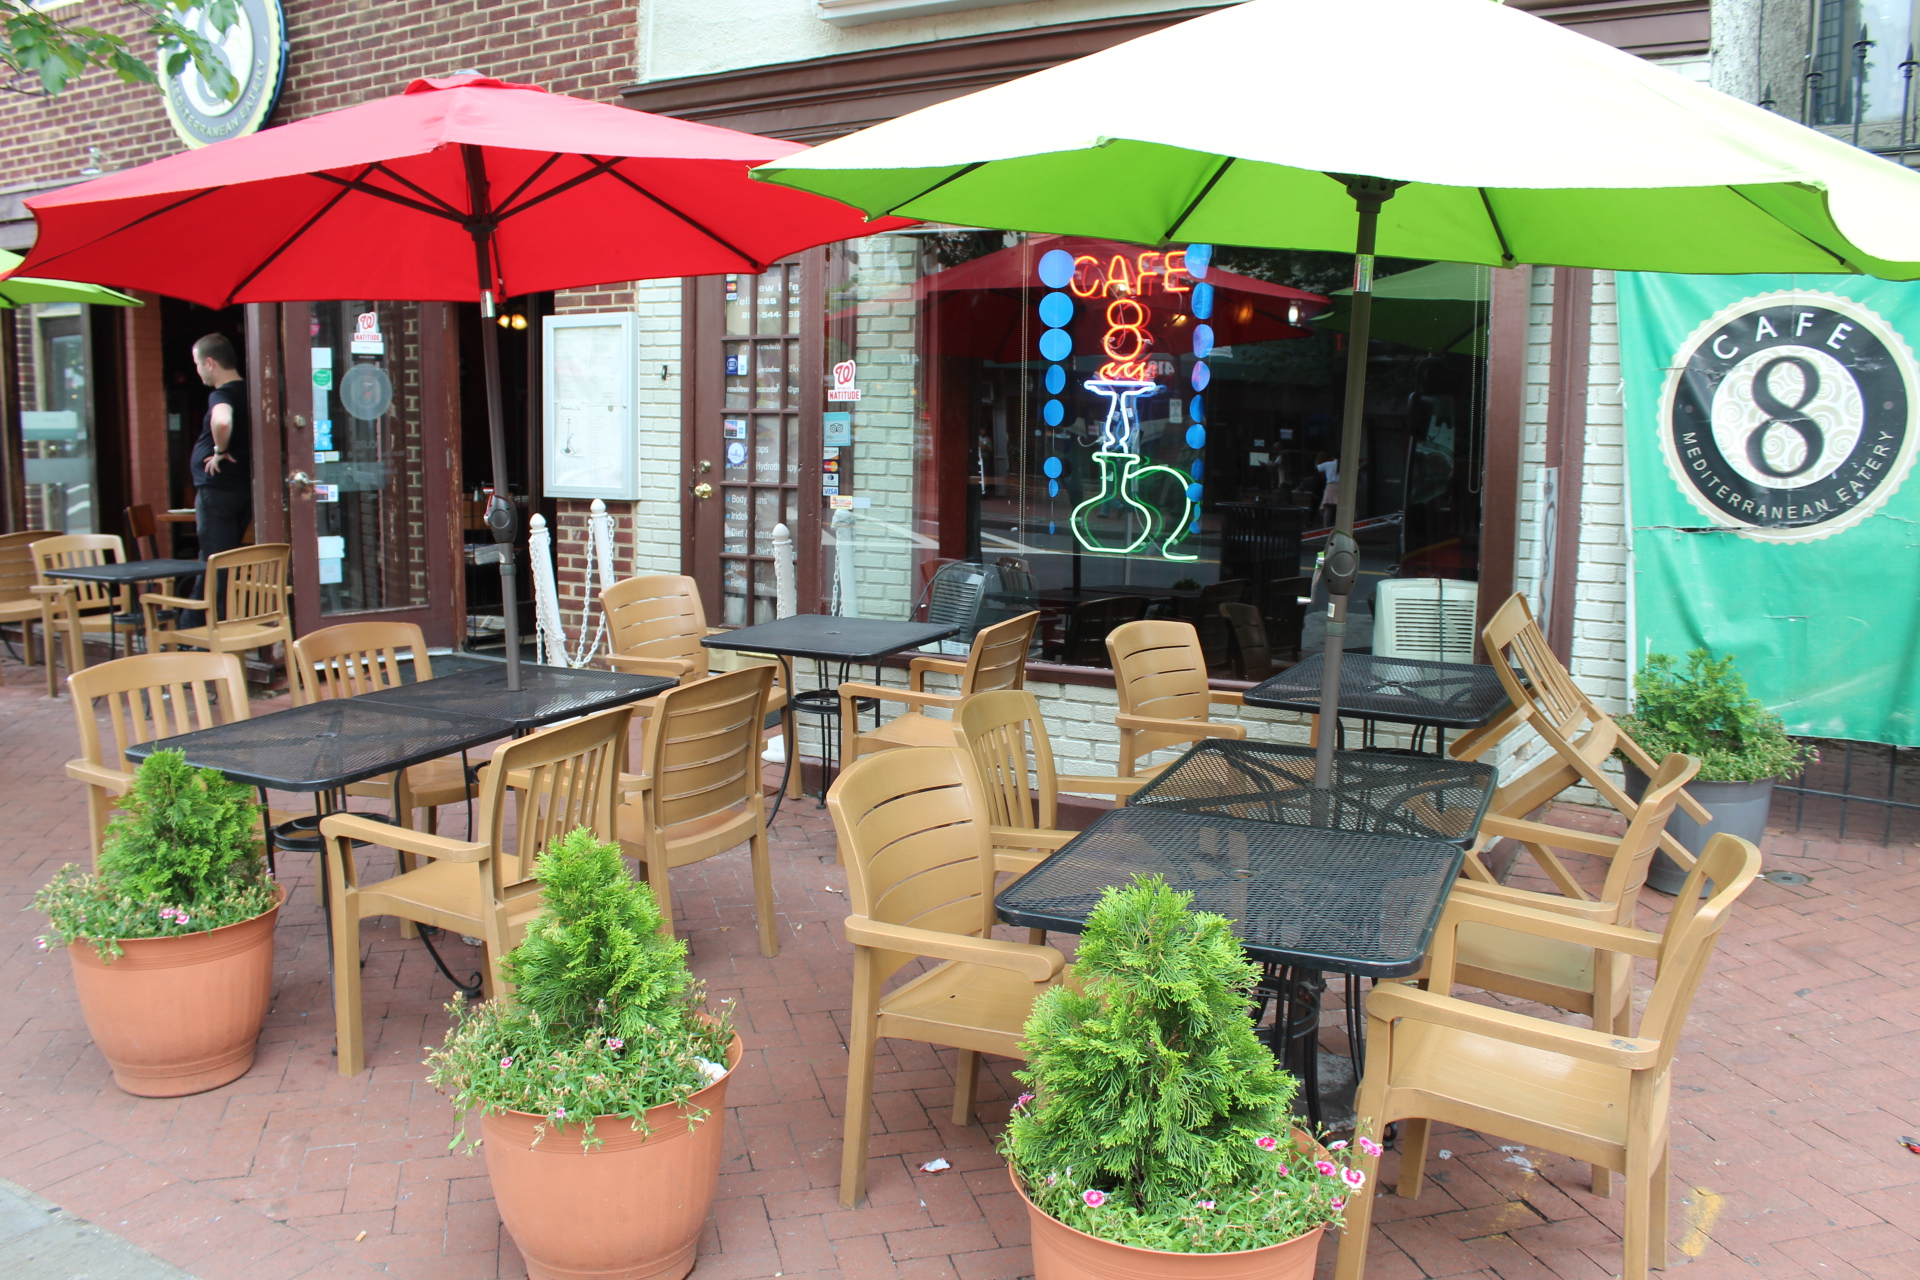 The Cafe 8 hookah bar and restaurant is a half mile from the Richard Wright School for Media and Journalism Arts public charter school where the author is a student.